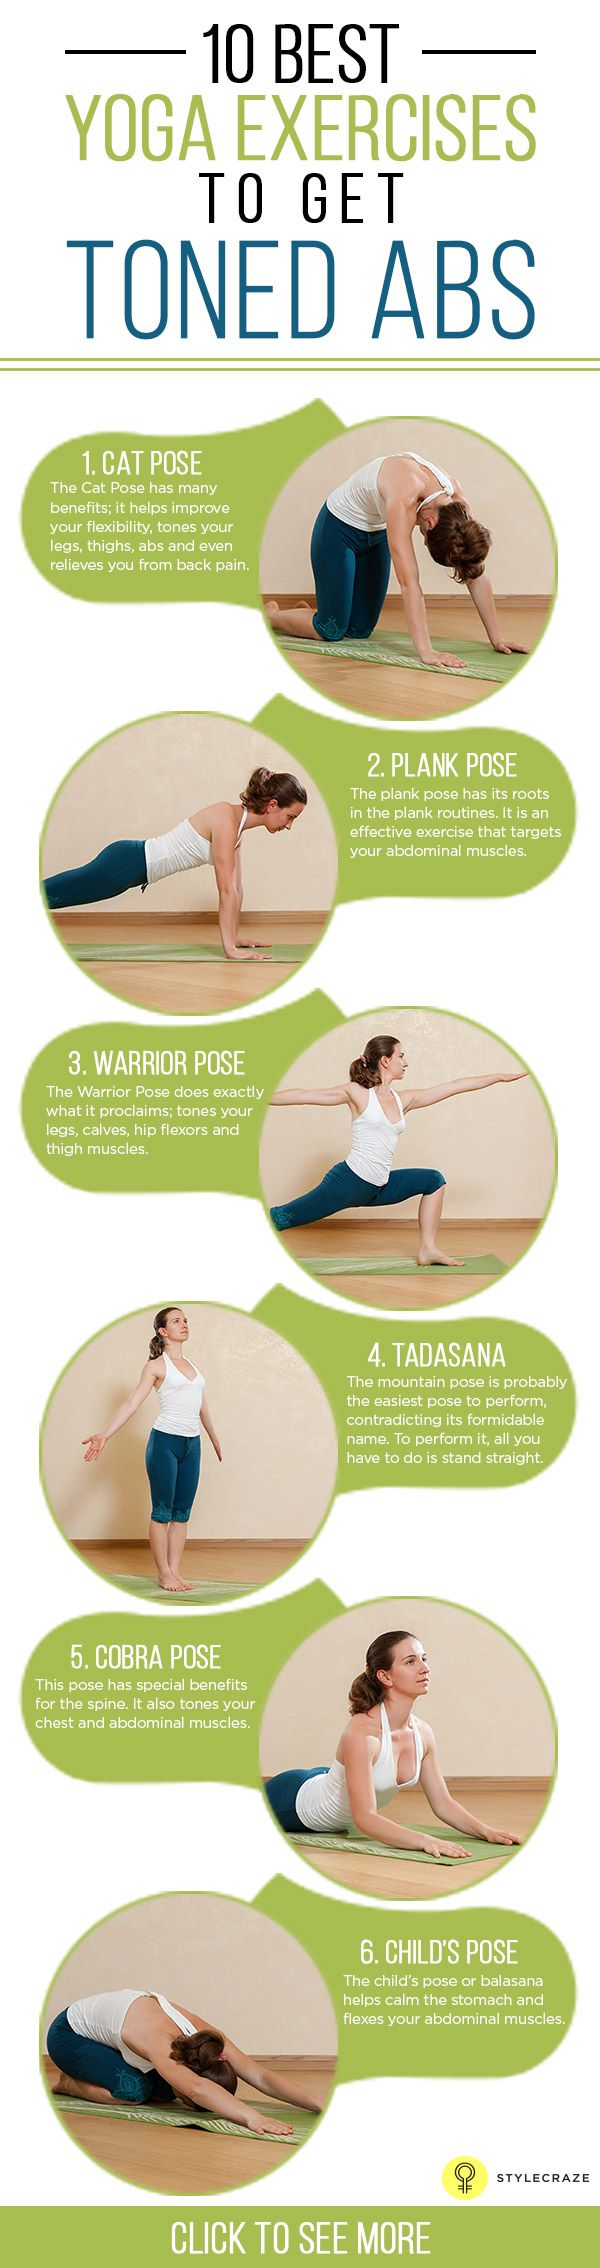 10 Best #Yoga Exercises To Get Toned #Abs Remarkable stories. Daily